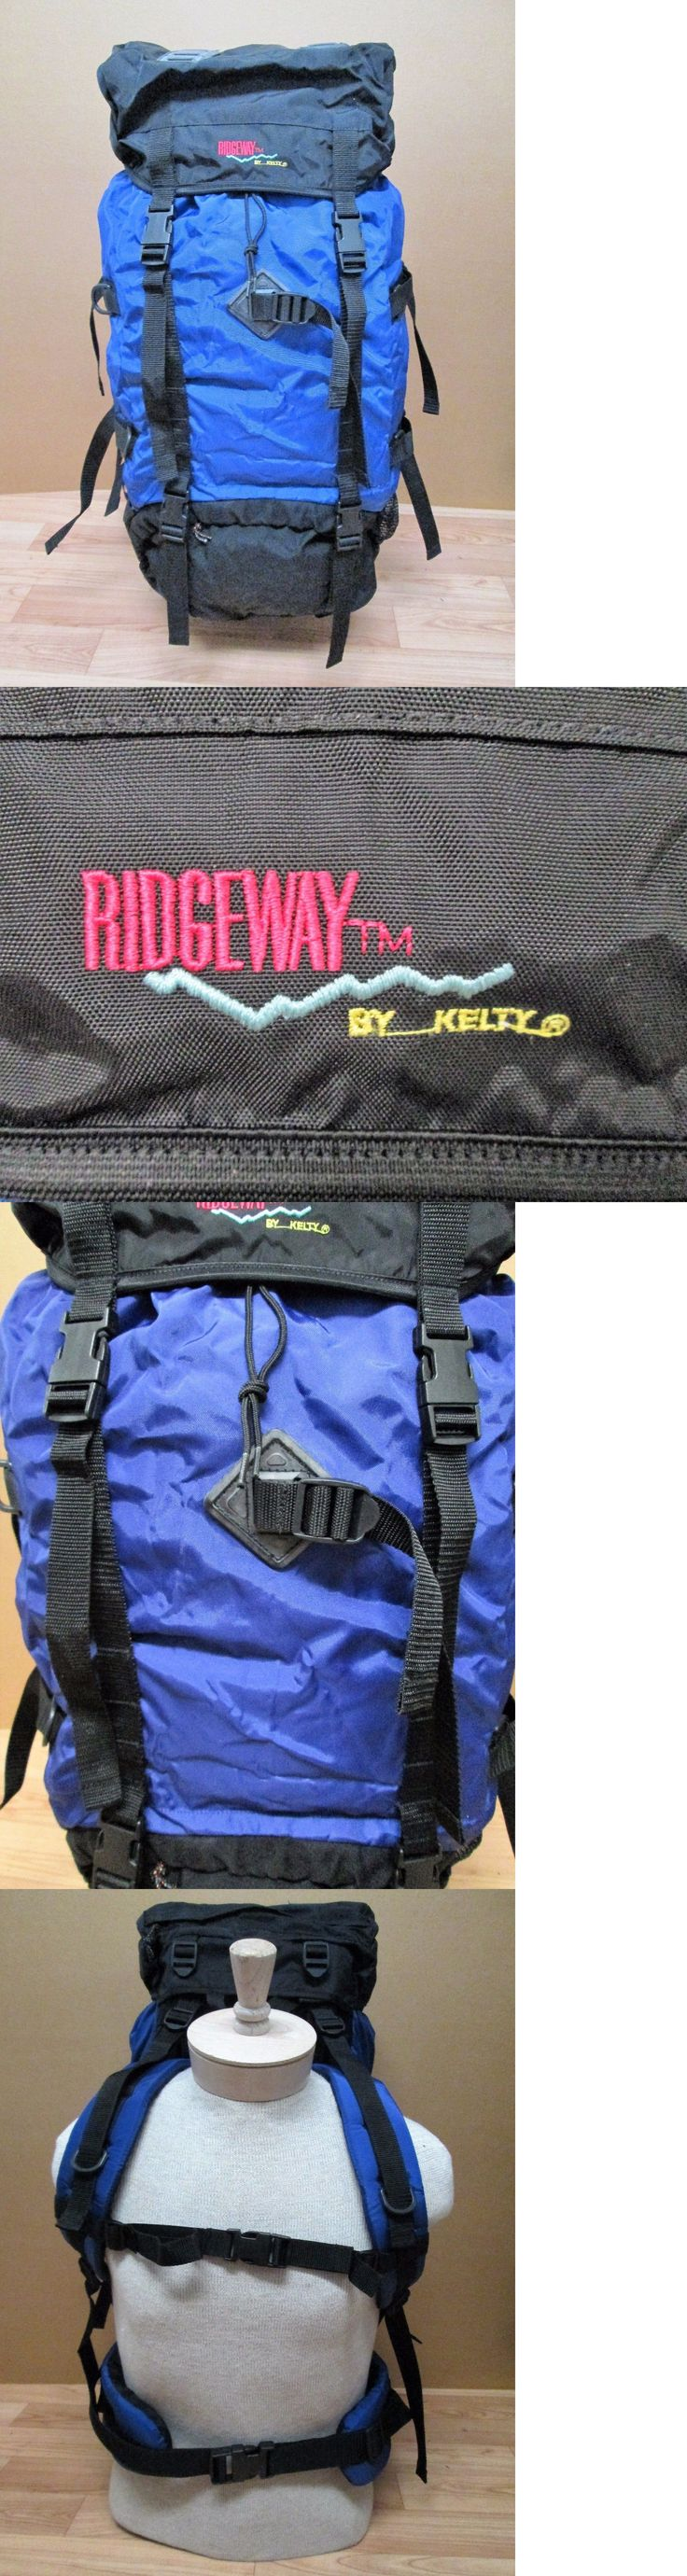 Other Camping Hiking Backpacks 36109: Ridgeway By Kelty Backpack Pack Hiking Camping Internal External Frame Purple -> BUY IT NOW ONLY: $59.99 on eBay!